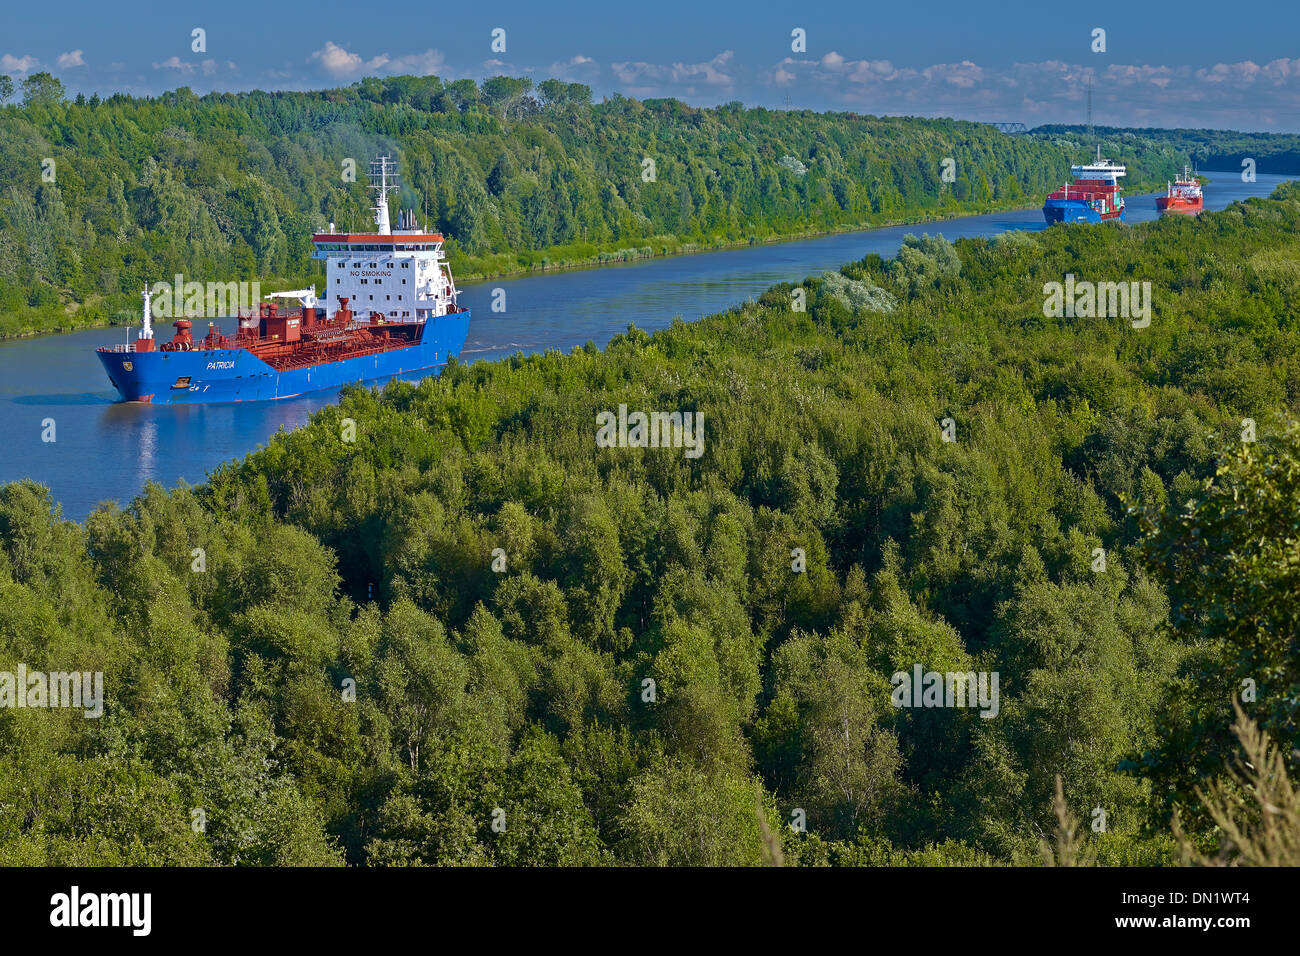 Tanker and container ships on the Kiel Canal near Itzehoe, Dithmarschen District, Schleswig-Holstein, Germany - Stock Image